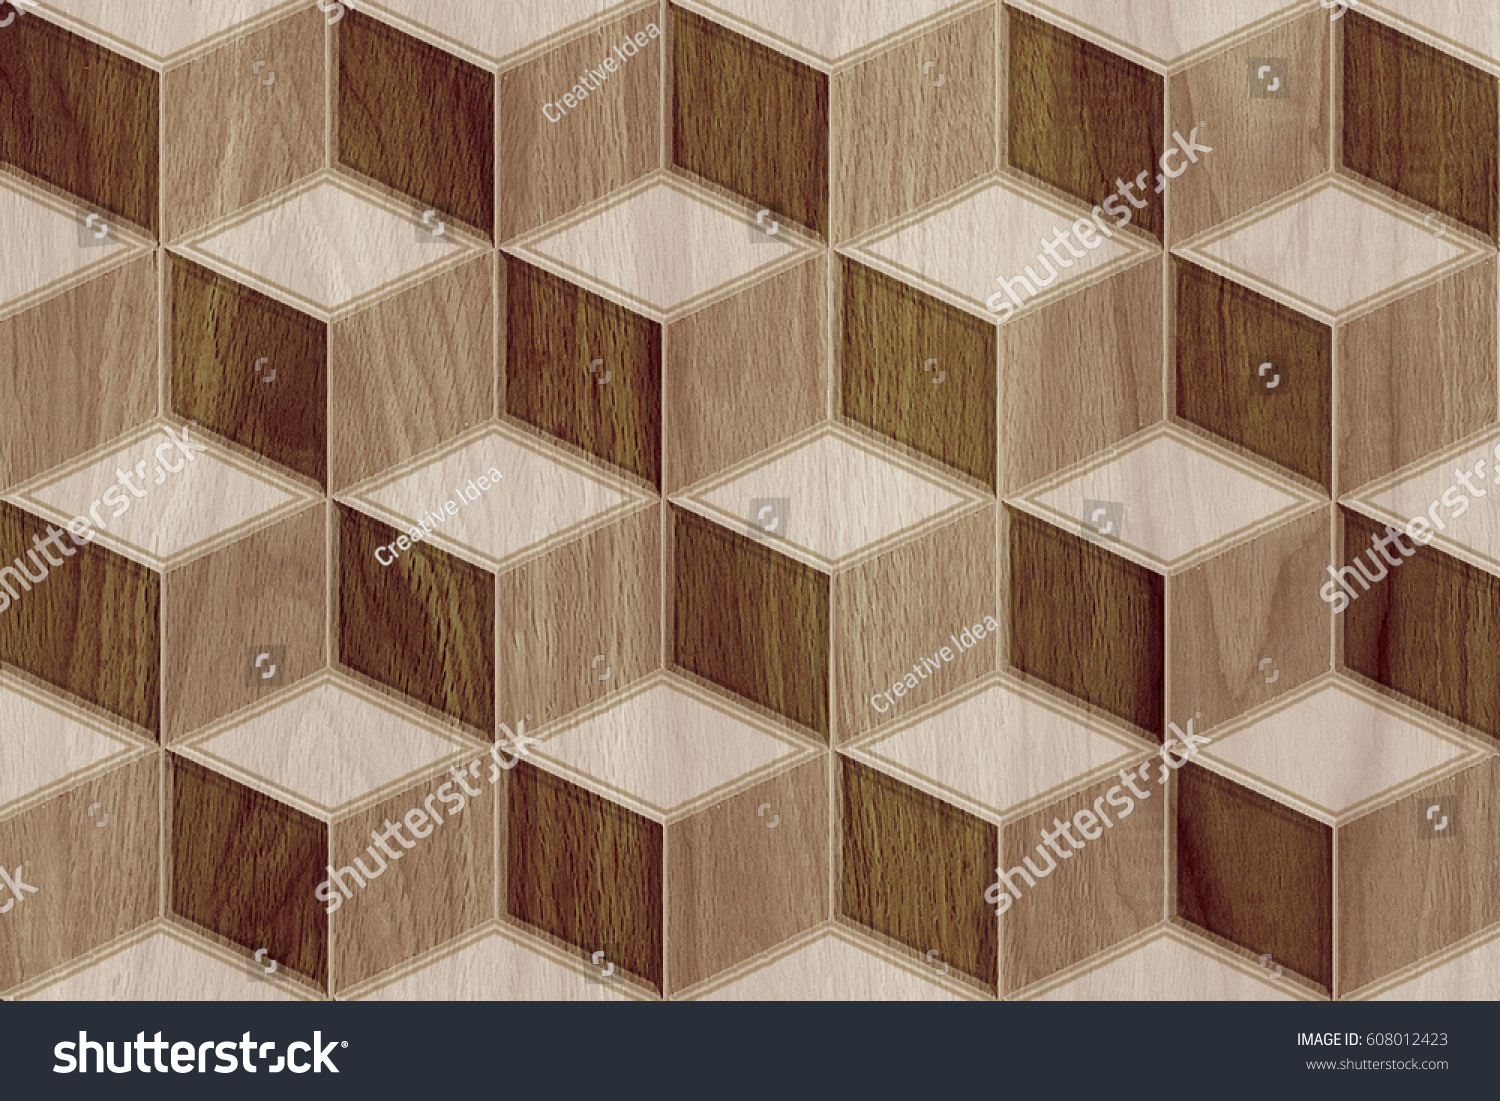 Abstract Home Decorative Wooden Wall Tiles Design Background,